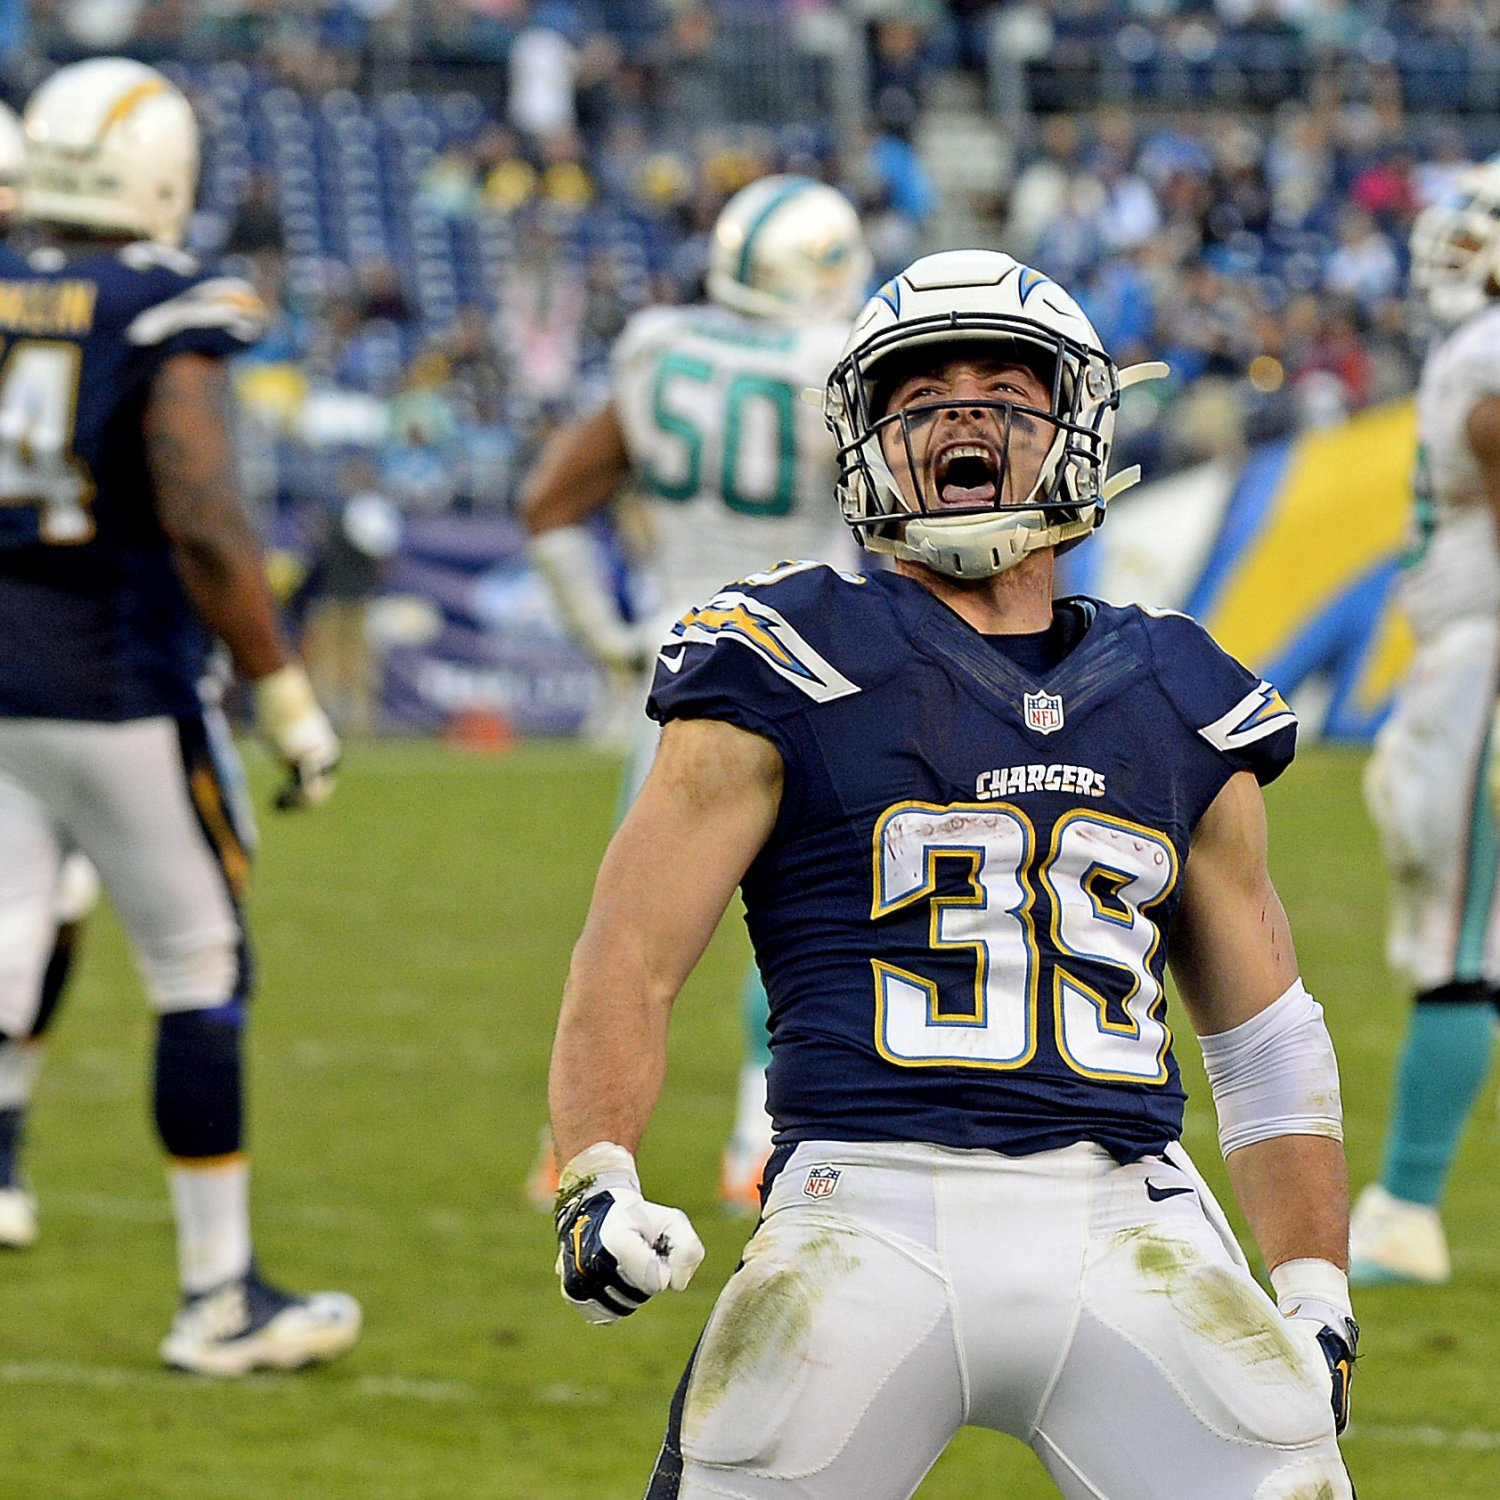 San Diego Chargers Danny Woodhead: Danny Woodhead, Donald Brown Updated Fantasy Outlook After